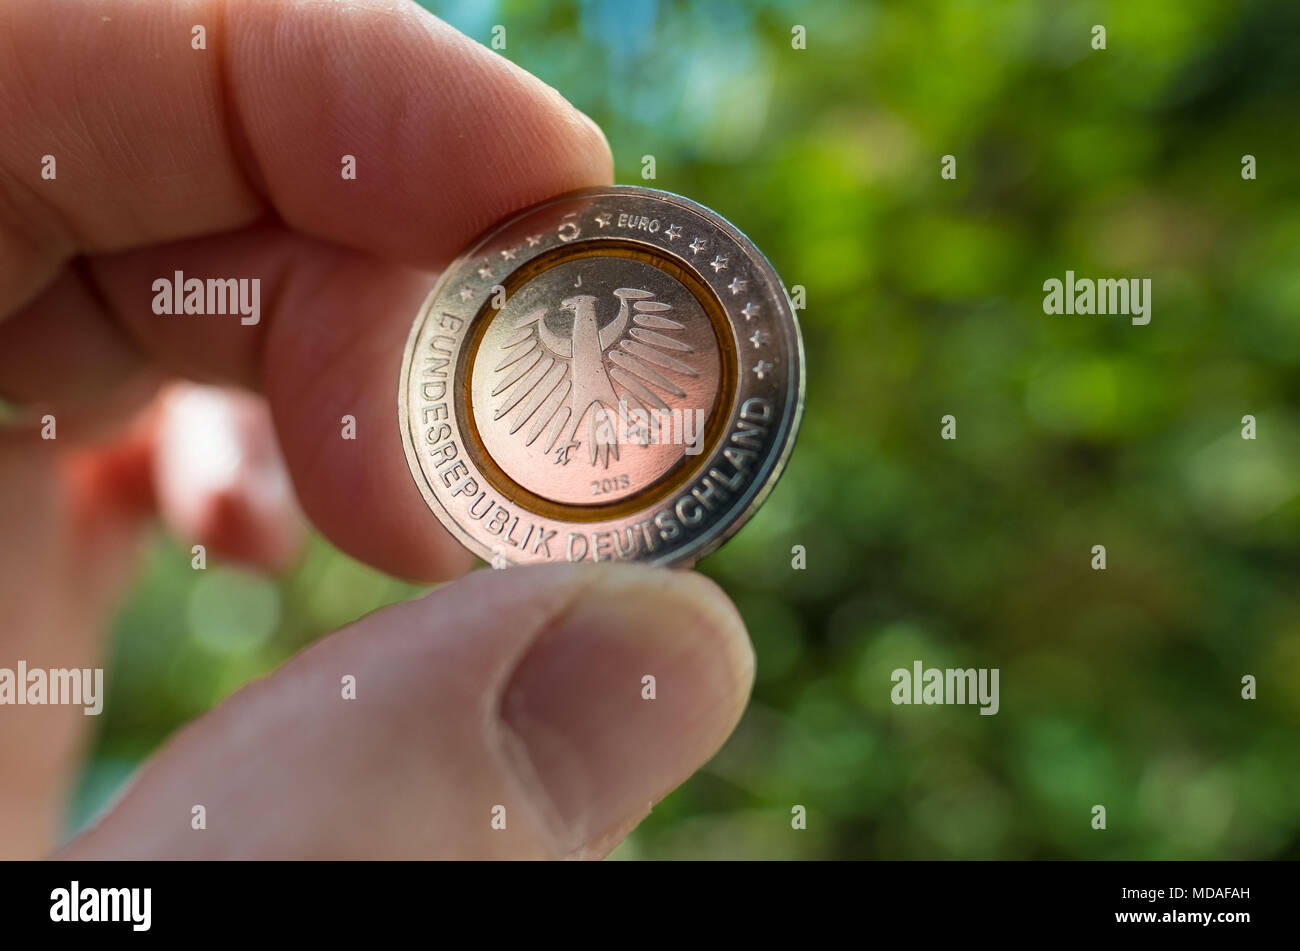 Hannover, Germany. 19th Apr, 2018. ILLUSTRATION - 19 April 2018, Germany, Hanover: The new 5-euro collectors' coin held up. Credit: Peter Steffen/dpa/Alamy Live News - Stock Image